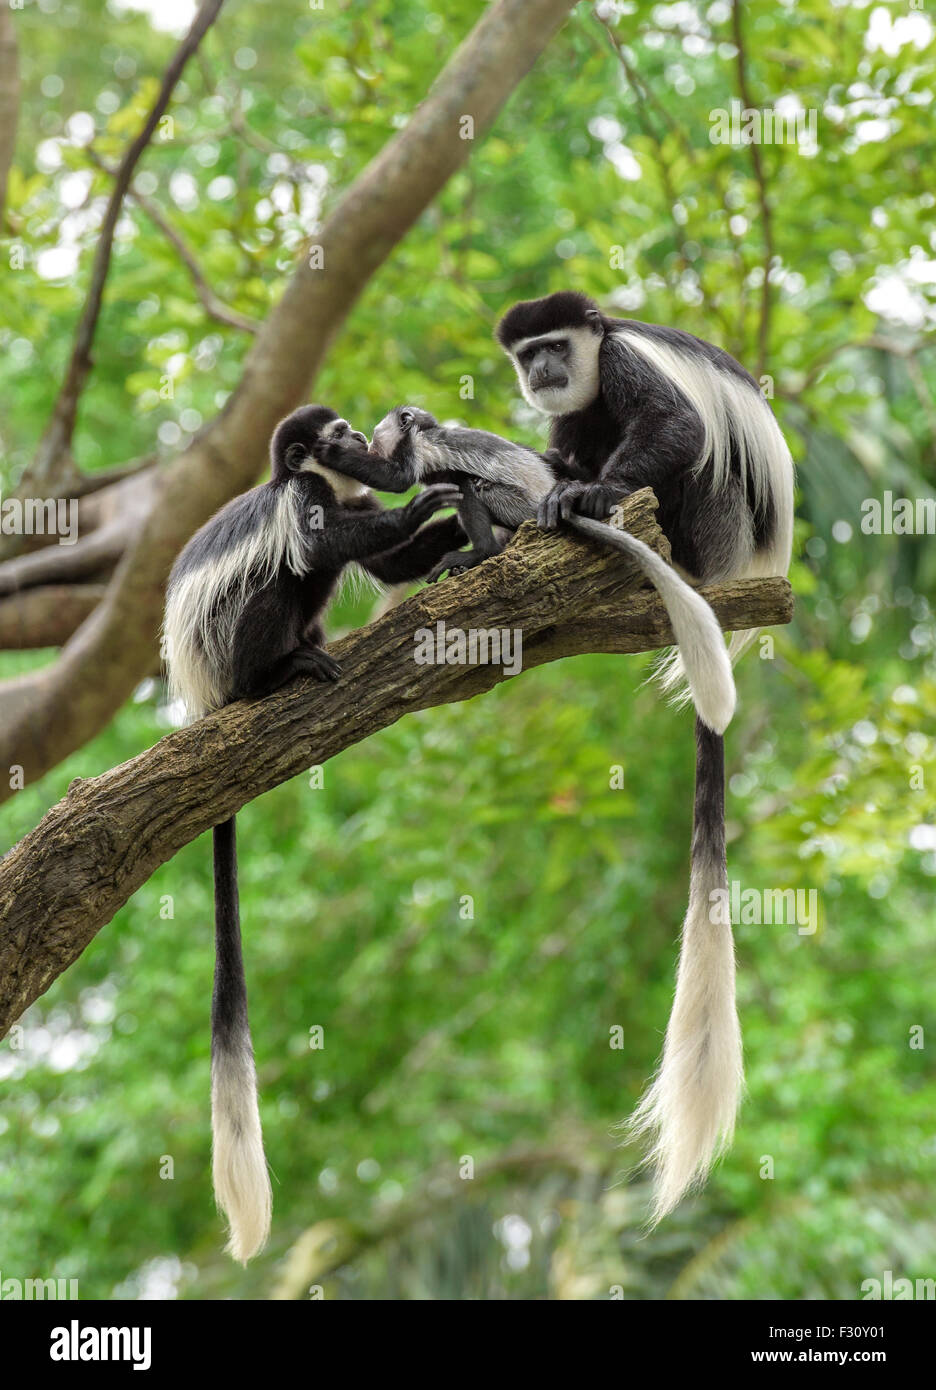 Family of black and white colobus monkeys sitting on a tree in rainforest - Stock Image